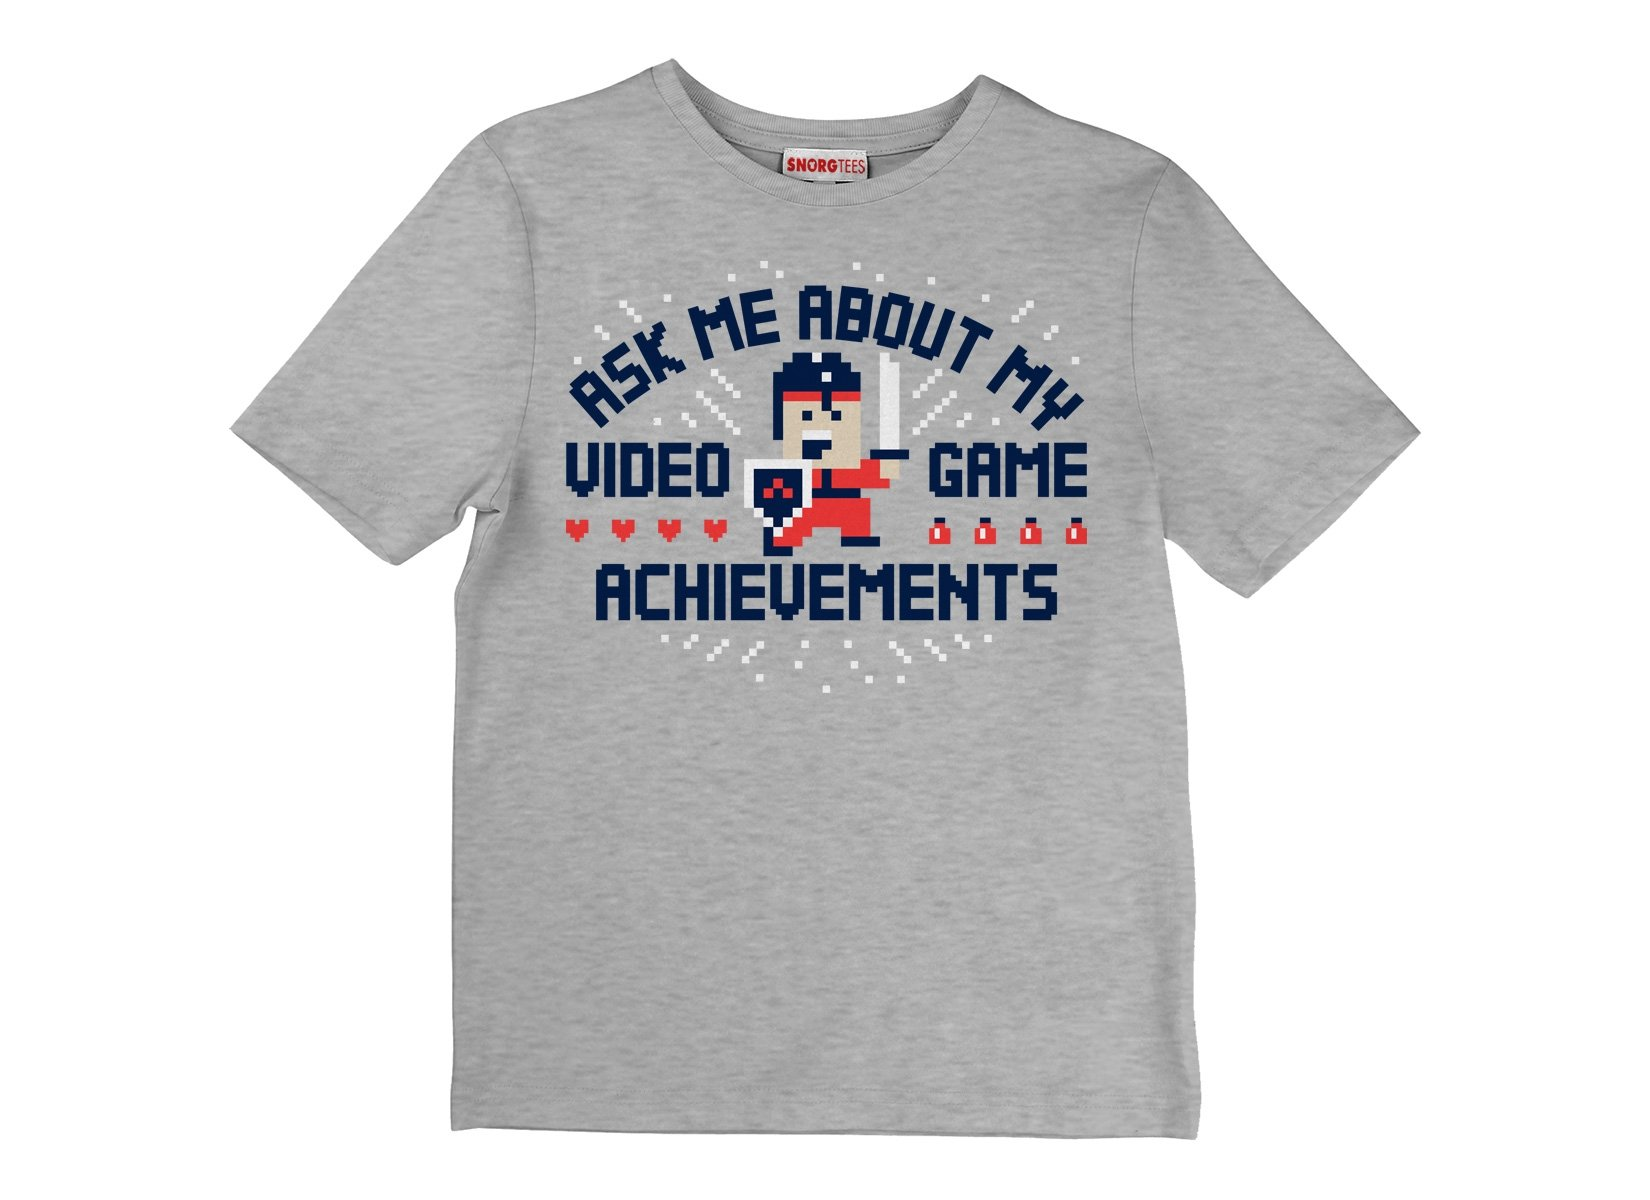 Ask Me About My Video Game Achievements on Kids T-Shirt